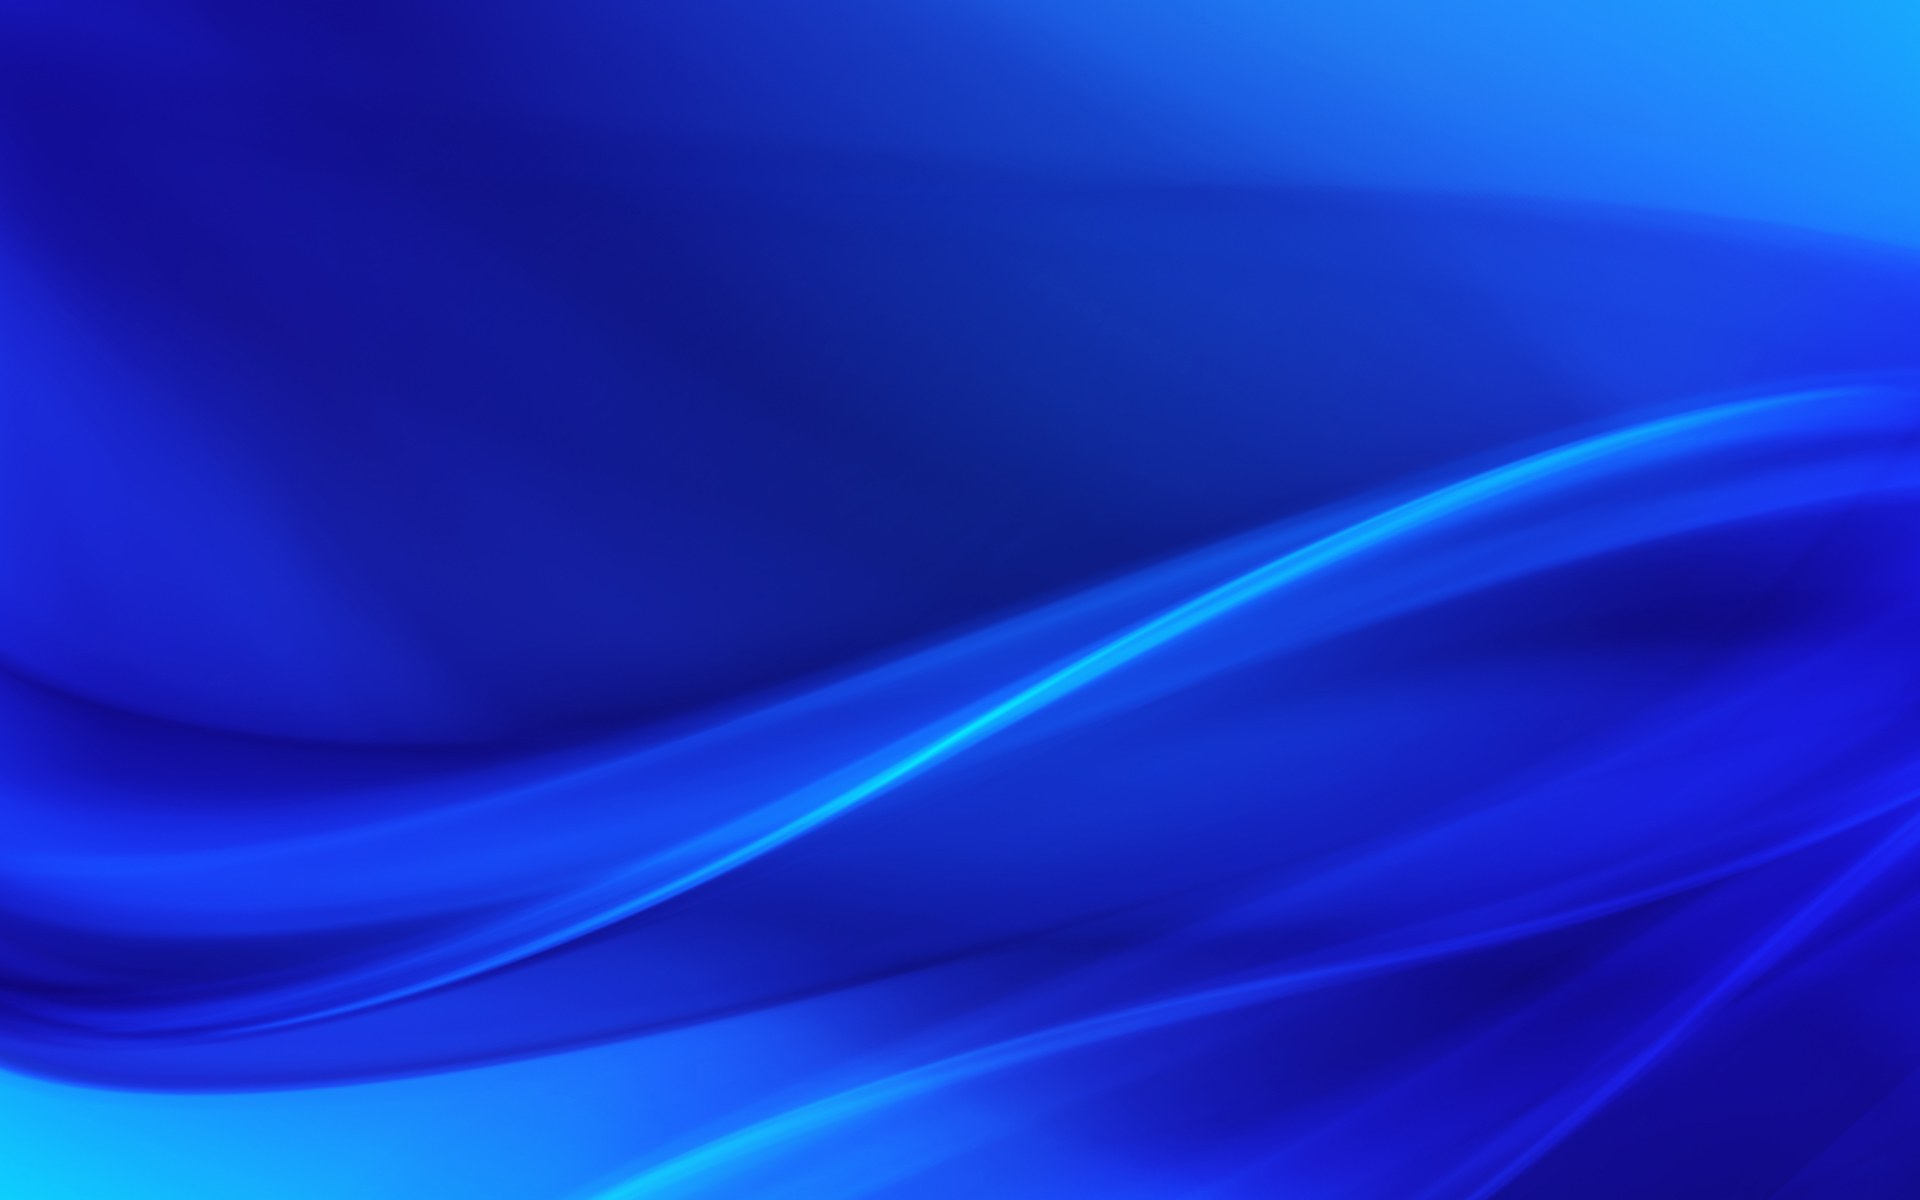 HD Abstract Blue Background   Blue Abstract Light Effect 19201200 NO 1920x1200